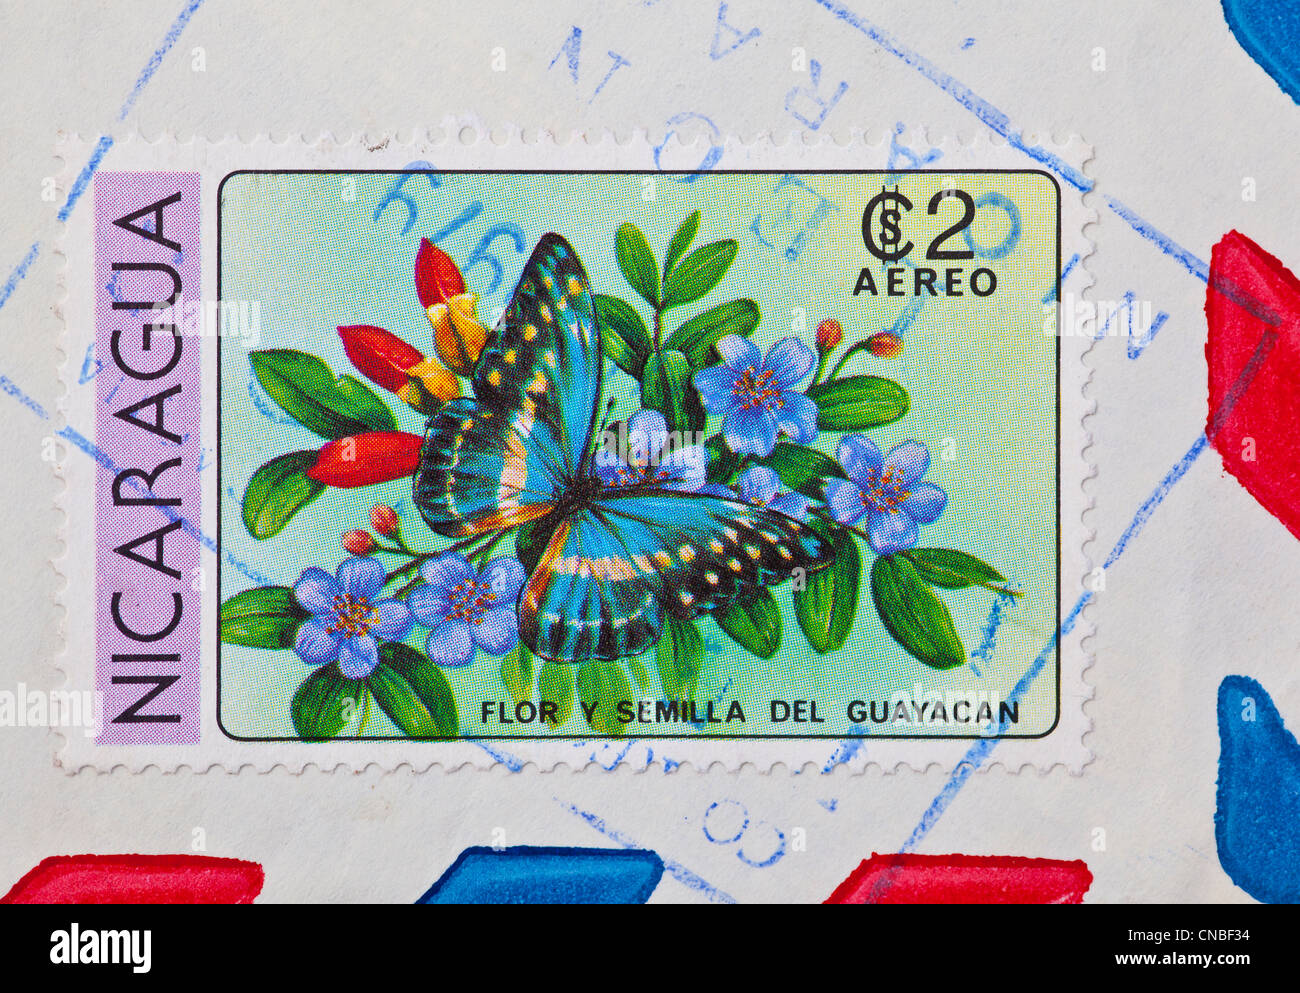 Colourful stamp from Nicaragua - Stock Image